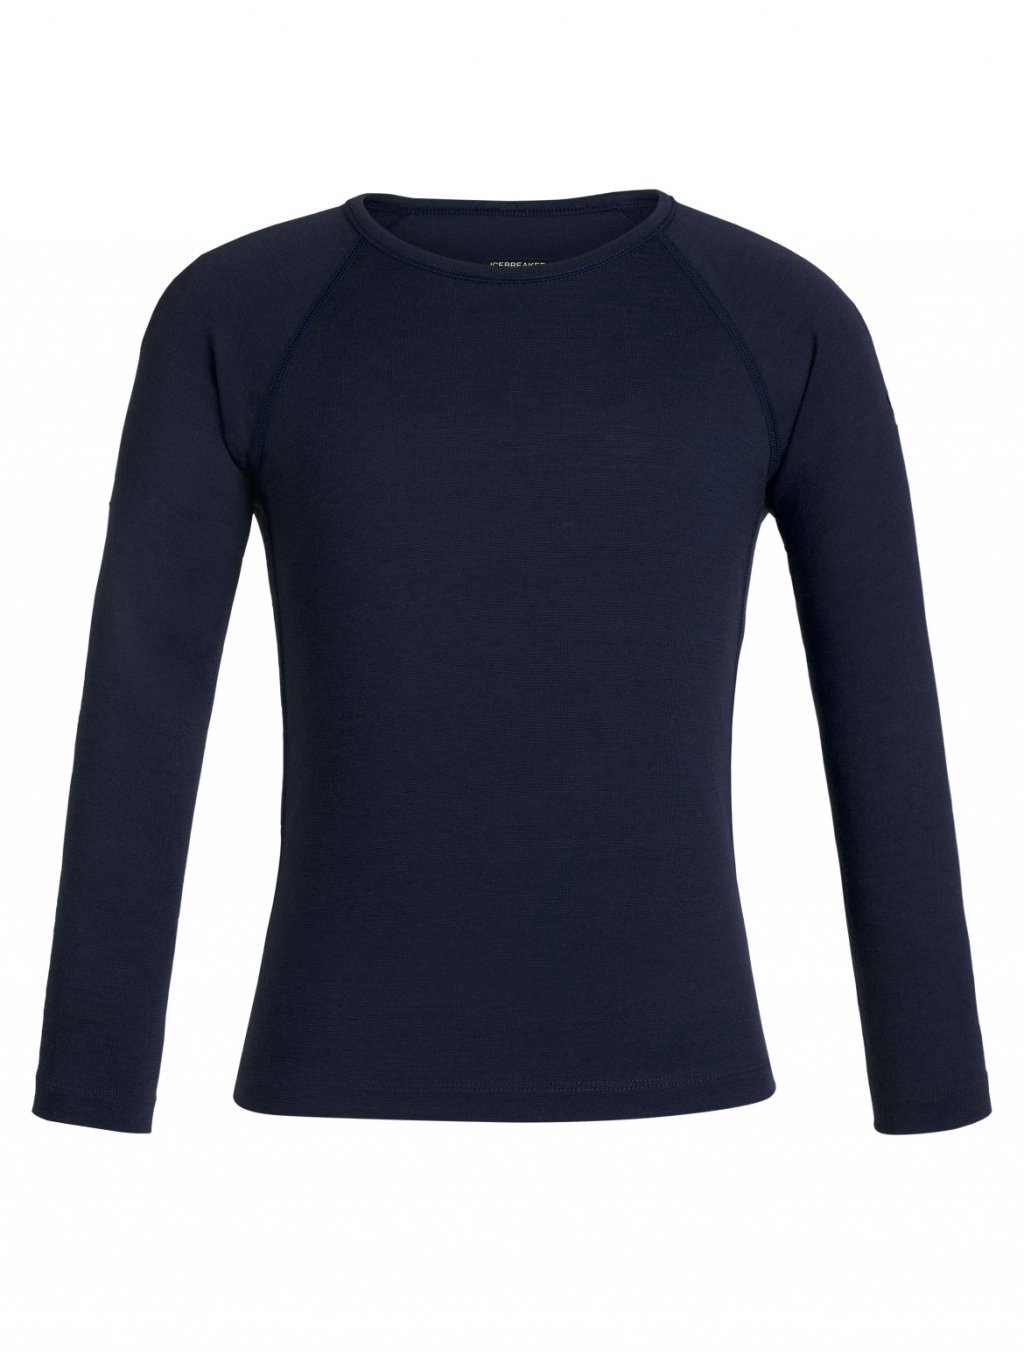 ICEBREAKER Kids 200 Oasis LS Crewe, Midnight Navy